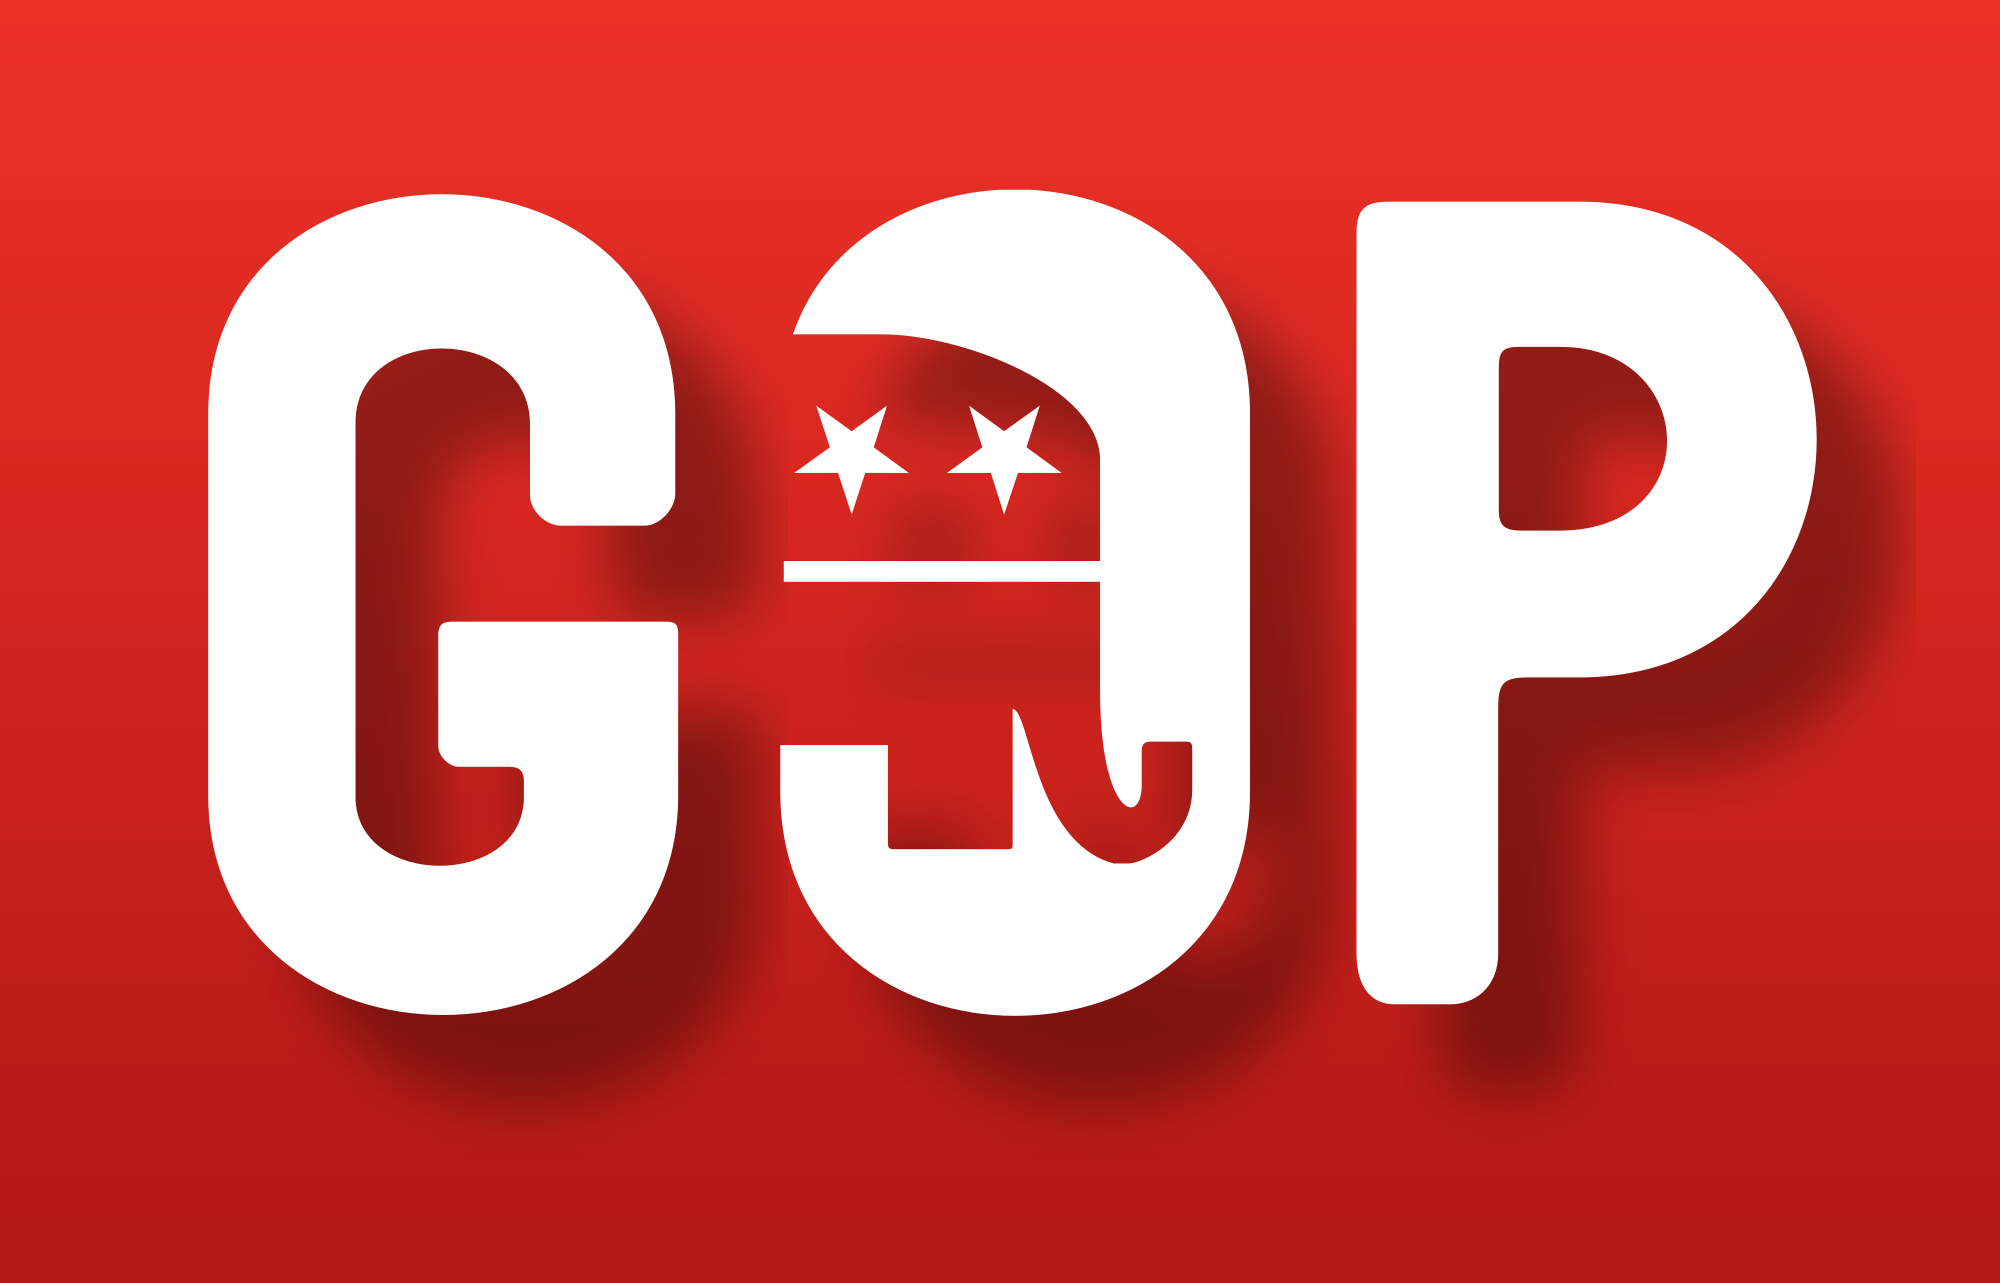 republican party logo desktop wallpaper 63150